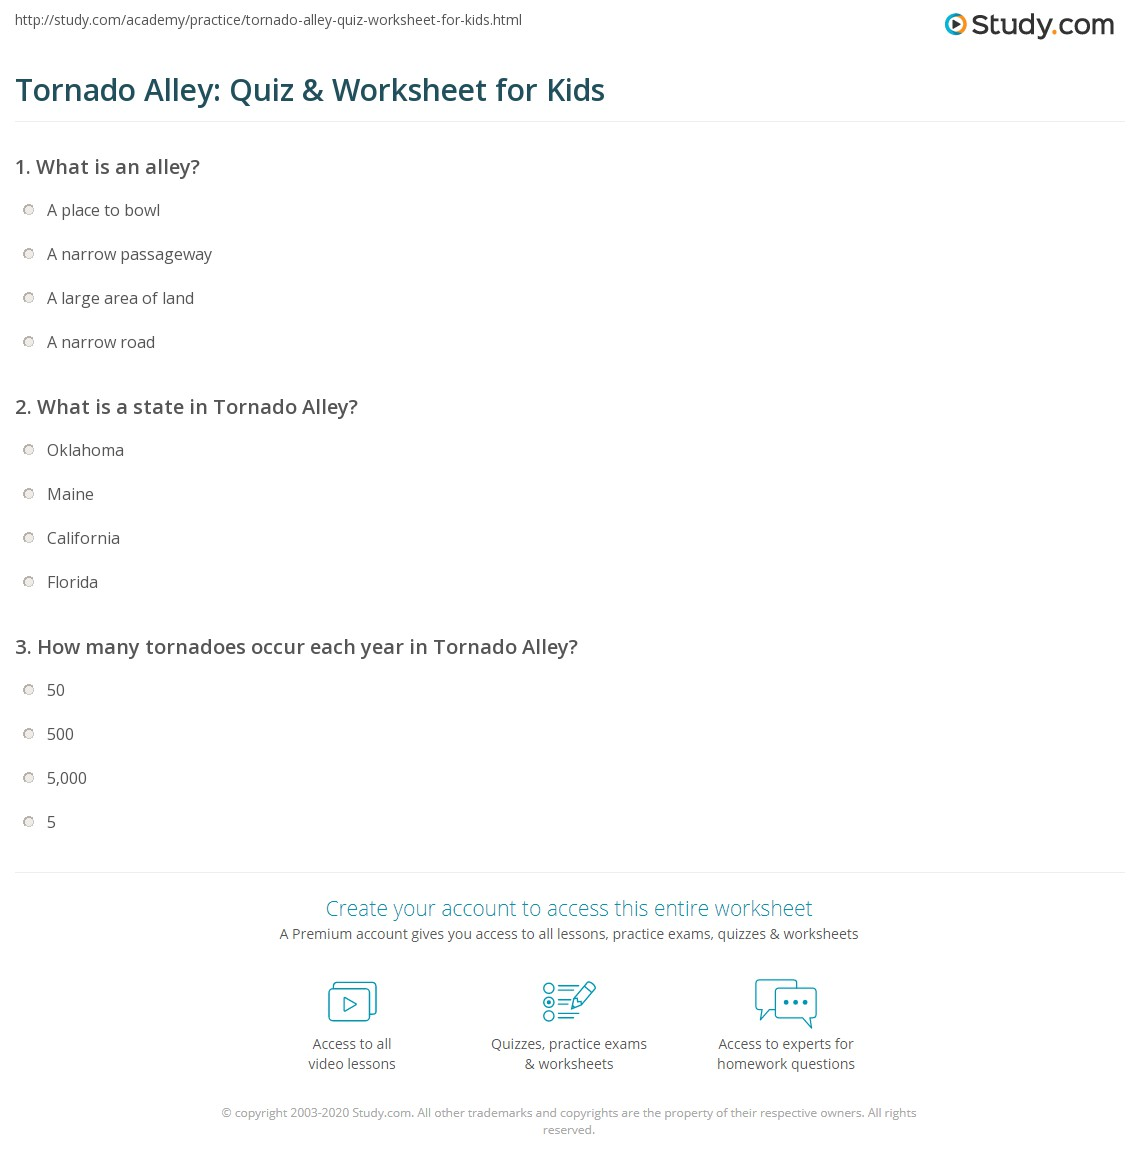 Tornado Alley Quiz & Worksheet for Kids